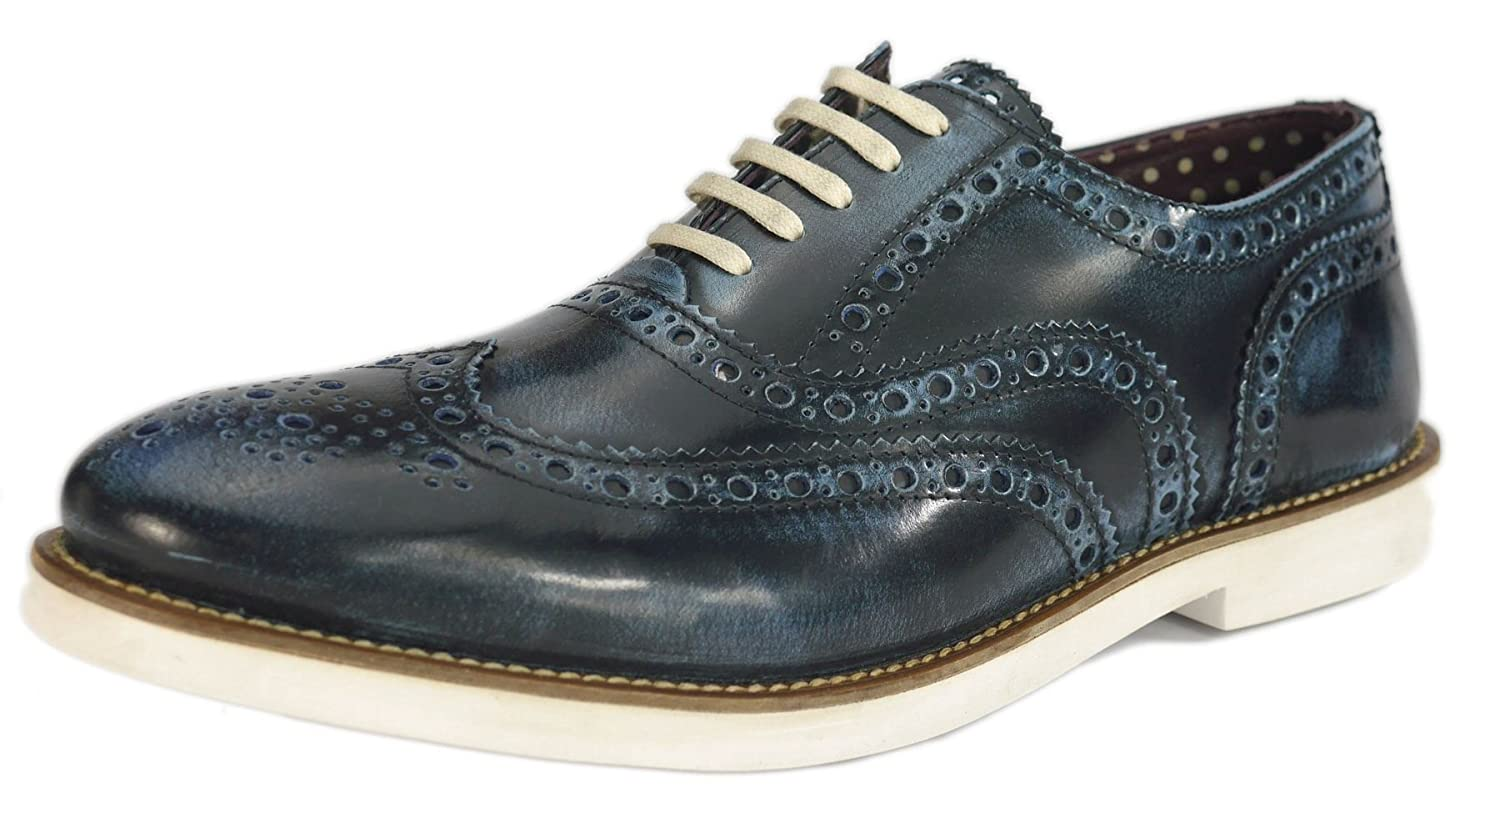 London Brogues Farnham Navy/White Mens Leather Brogue Shoes, Size 11